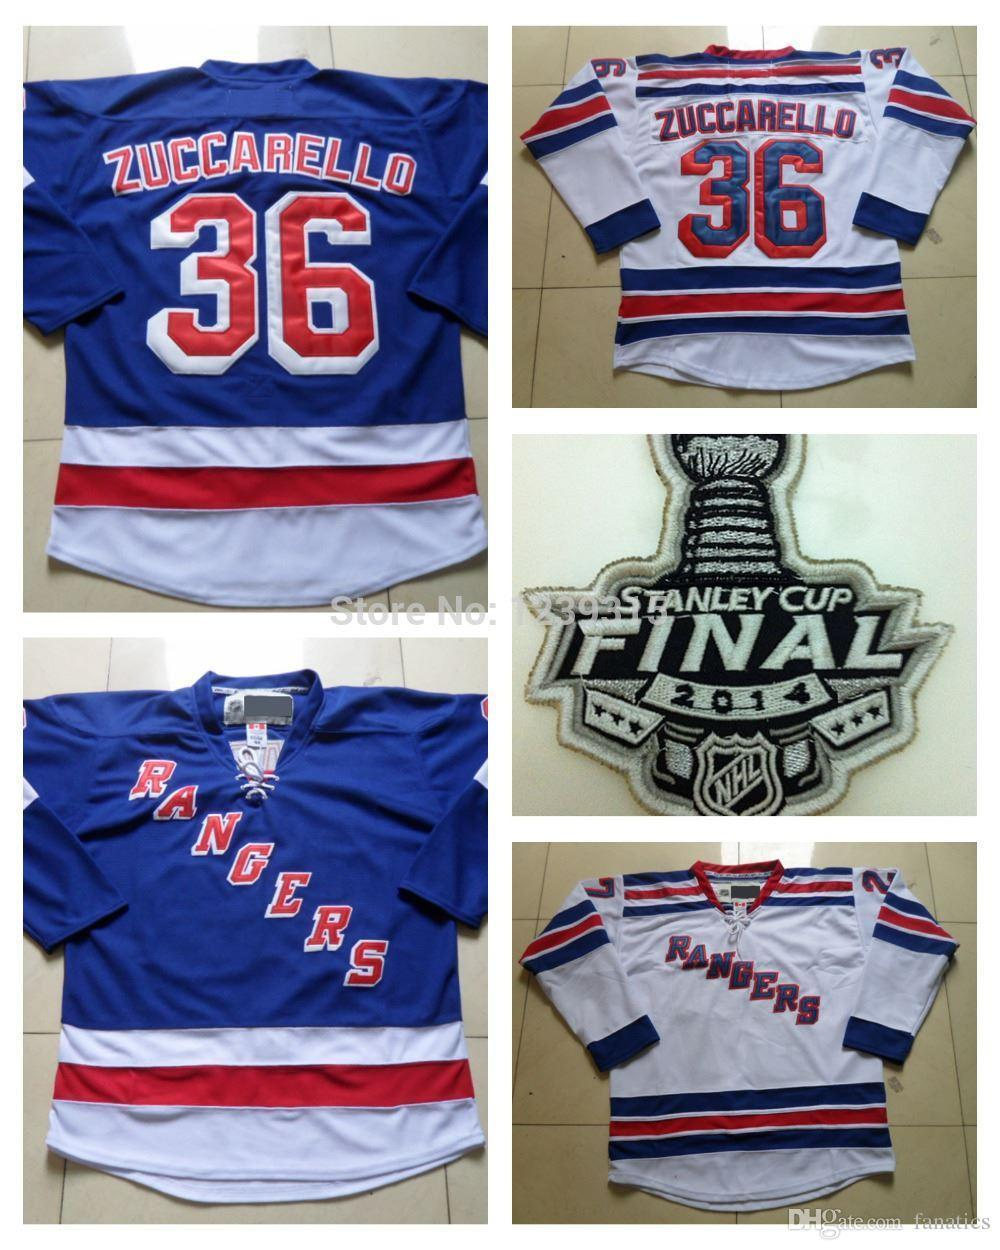 huge selection of 384bb b9cea 2016 Stanley Cup New York Rangers Jerseys #36 Mats Zuccarello Jersey Home  Royal Blue Road White Mats Zuccarello Stitched Jerseys